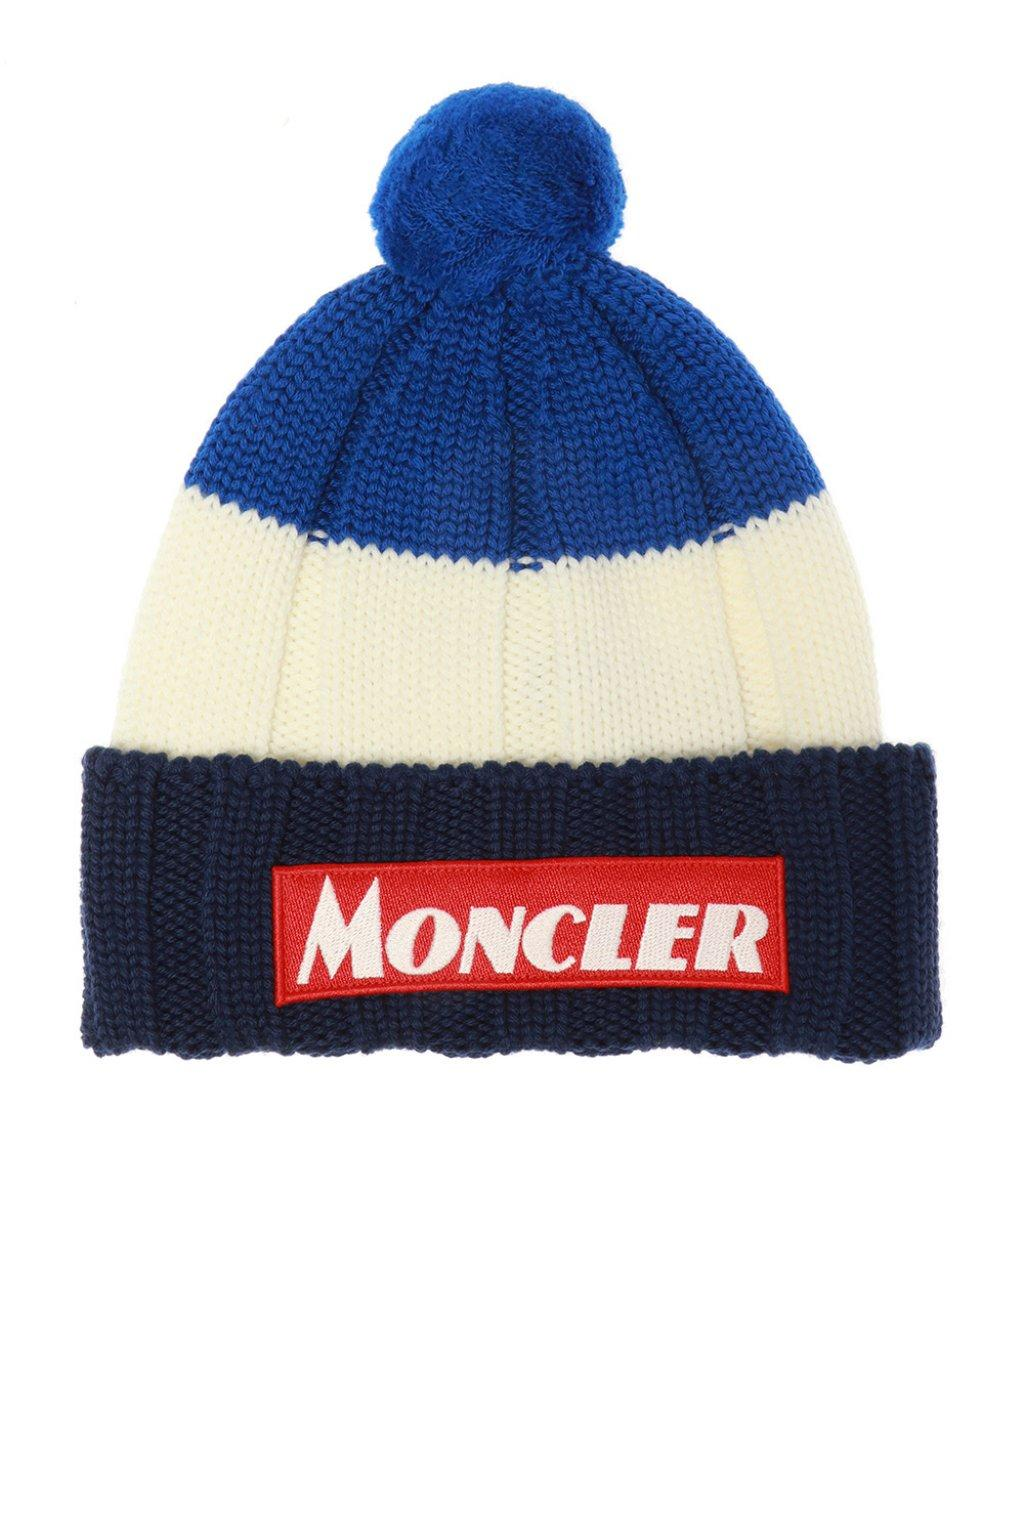 37f1d326e Moncler Pompom Hat in Blue for Men - Save 19% - Lyst